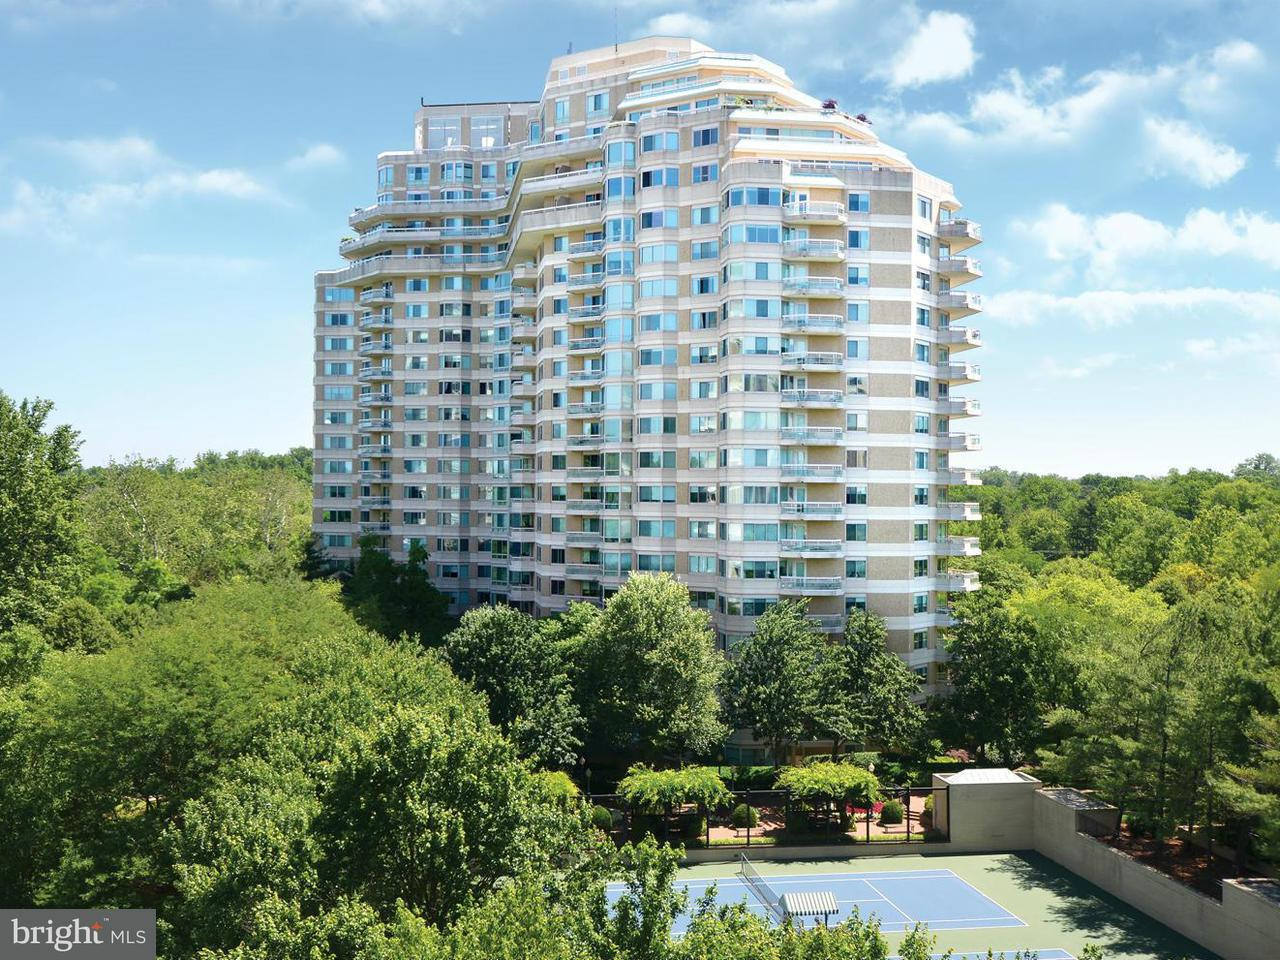 Condominium for Sale at 5600 WISCONSIN AVE #603 5600 WISCONSIN AVE #603 Chevy Chase, Maryland 20815 United States